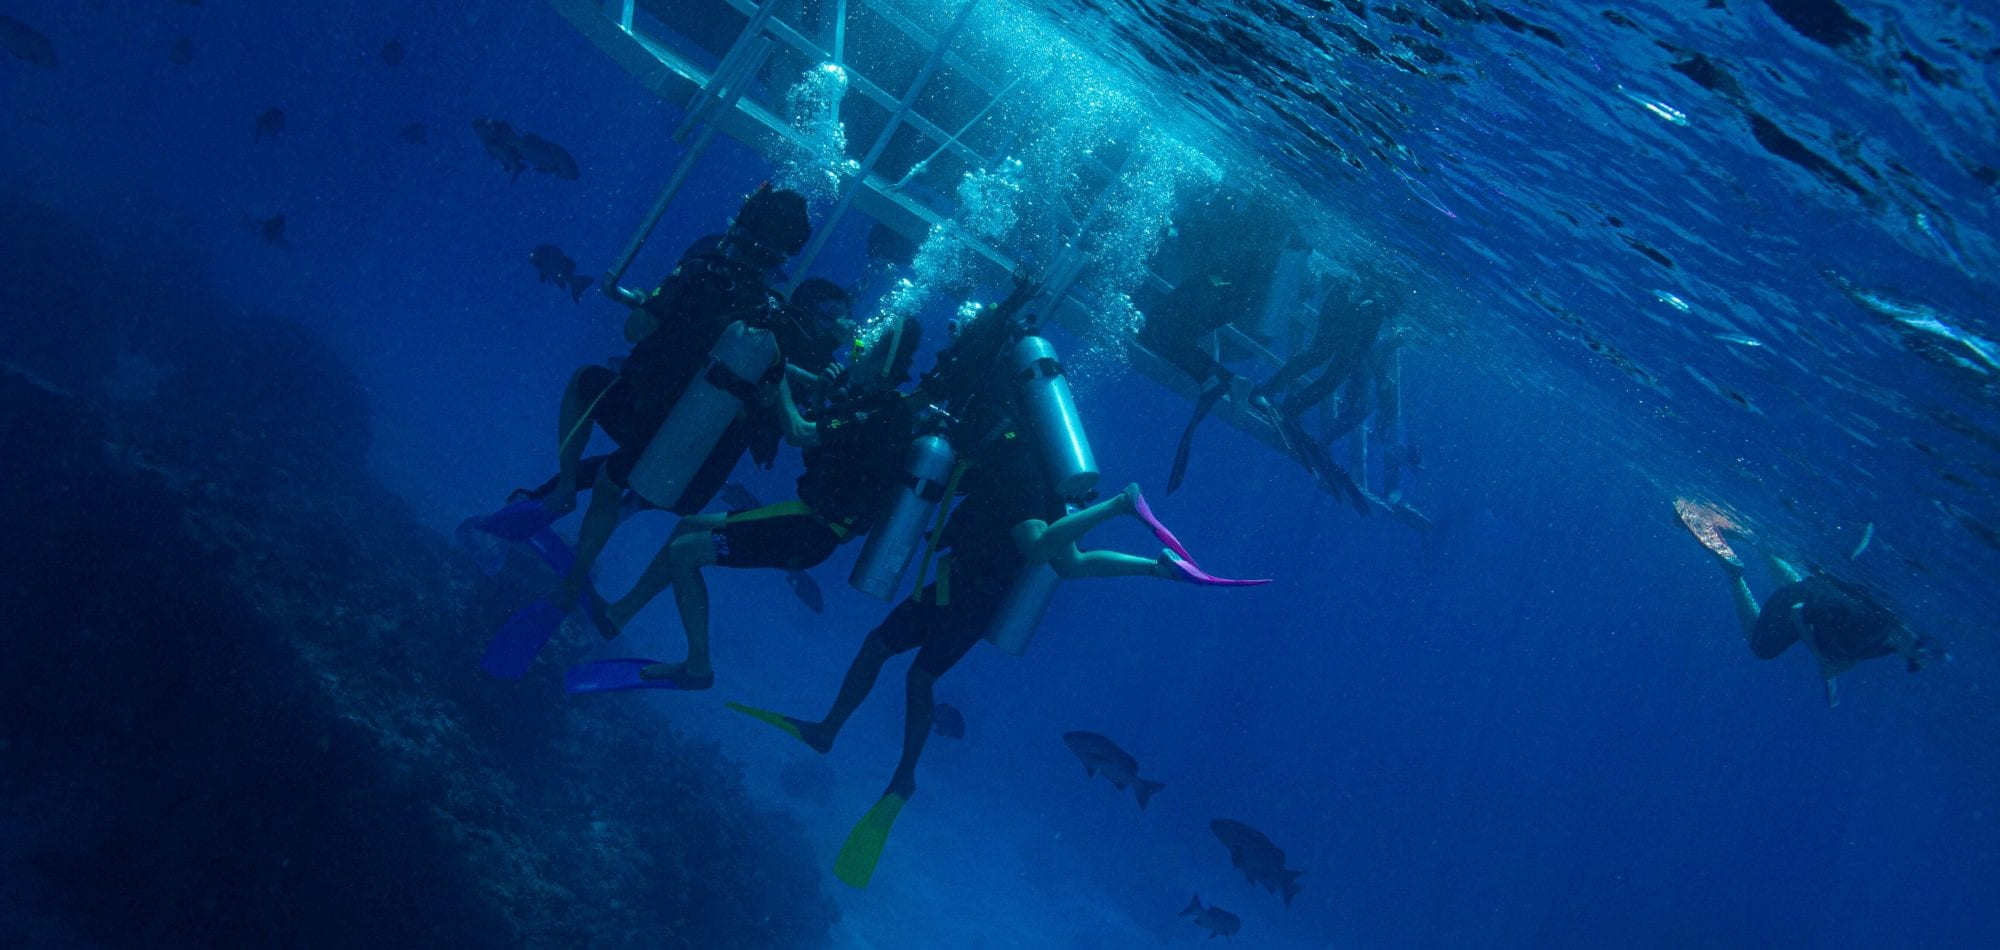 Cairns scuba diving day trip - divers on decompression stop below Dreamtime boat